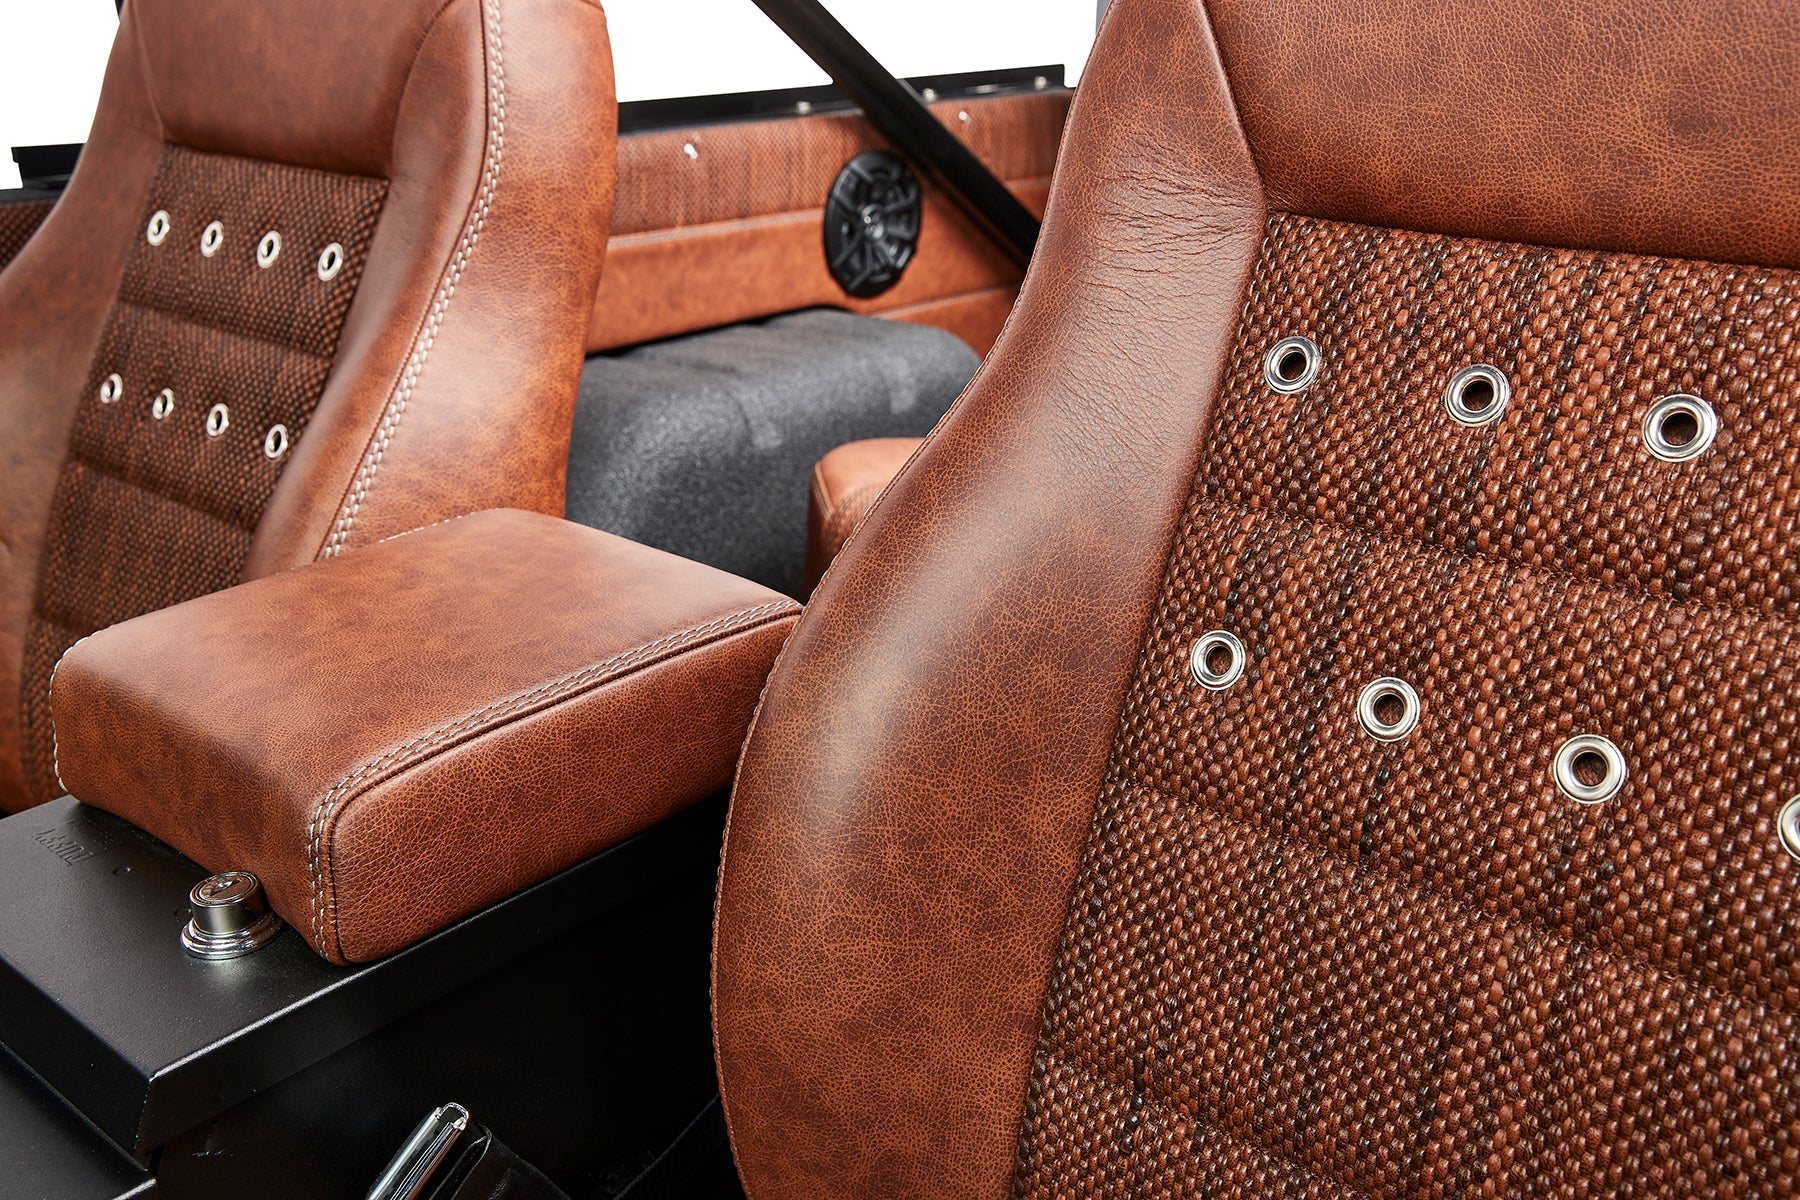 Classic Ford Broncos 1971 Bronco Relicate Llc Interior With Distressed Leather Featuring Woven